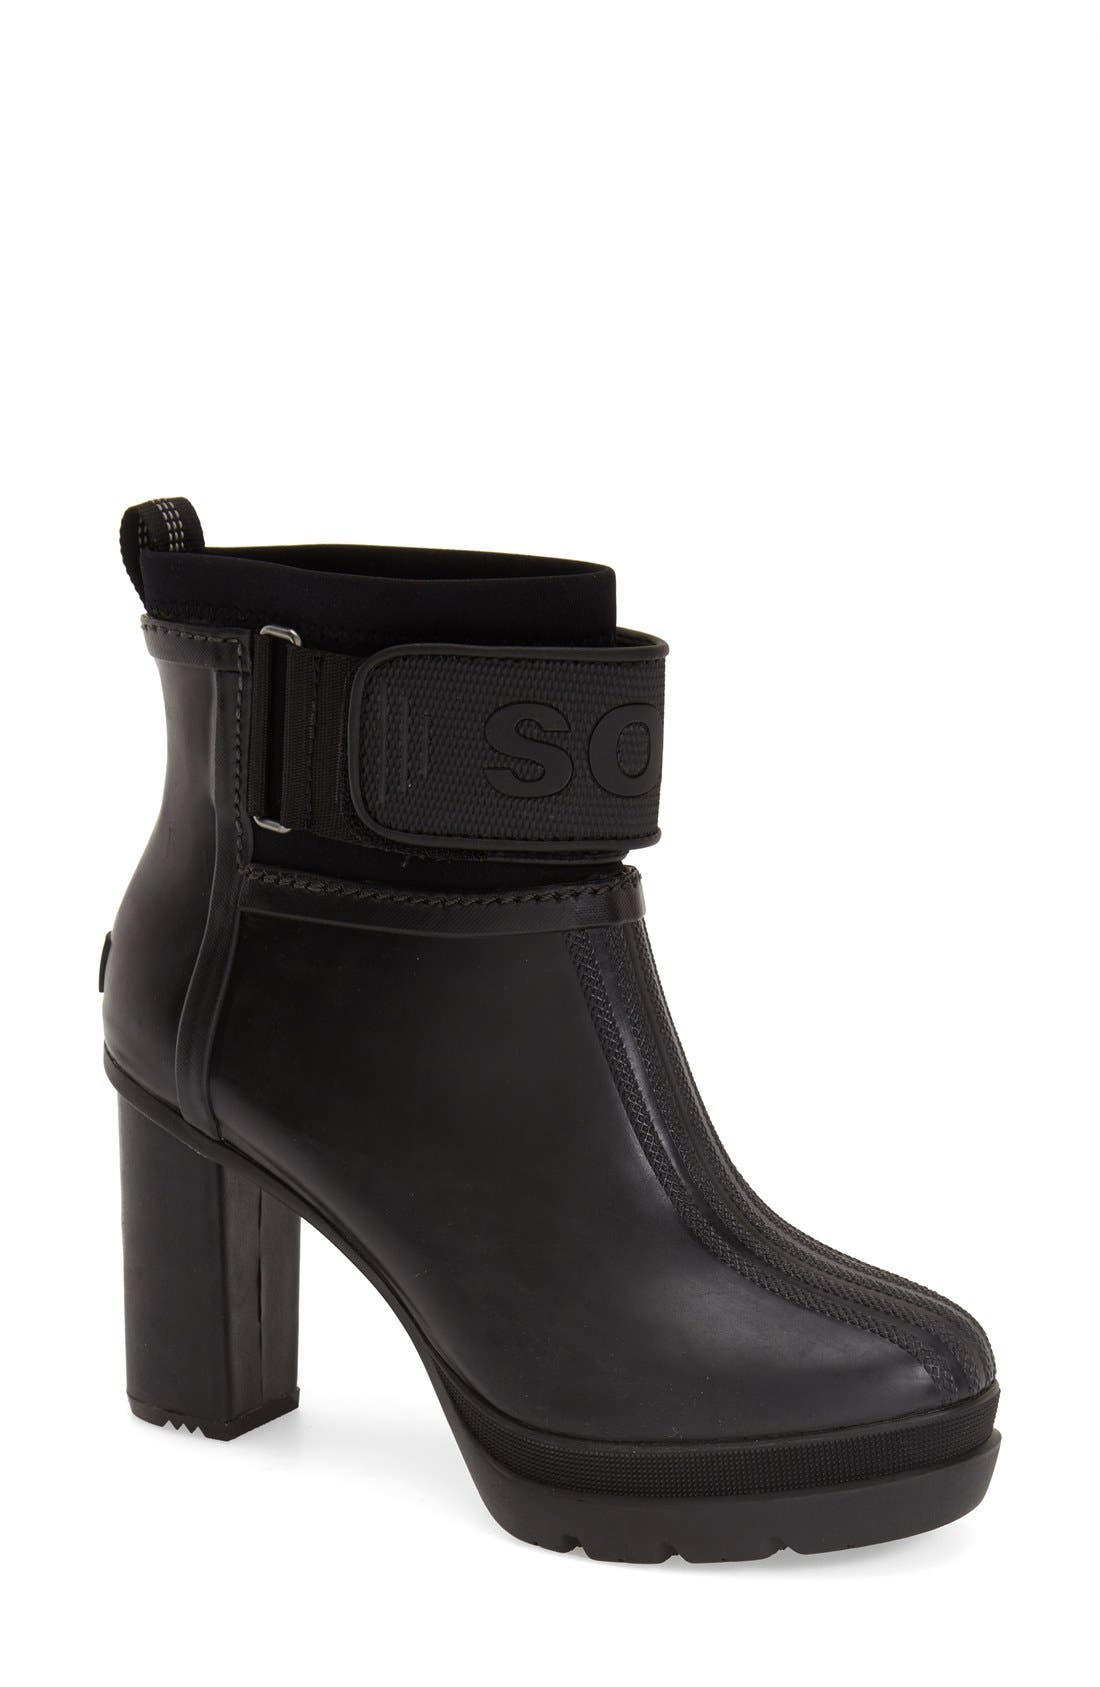 'Medina III' Waterproof Bootie, Main, color, 010